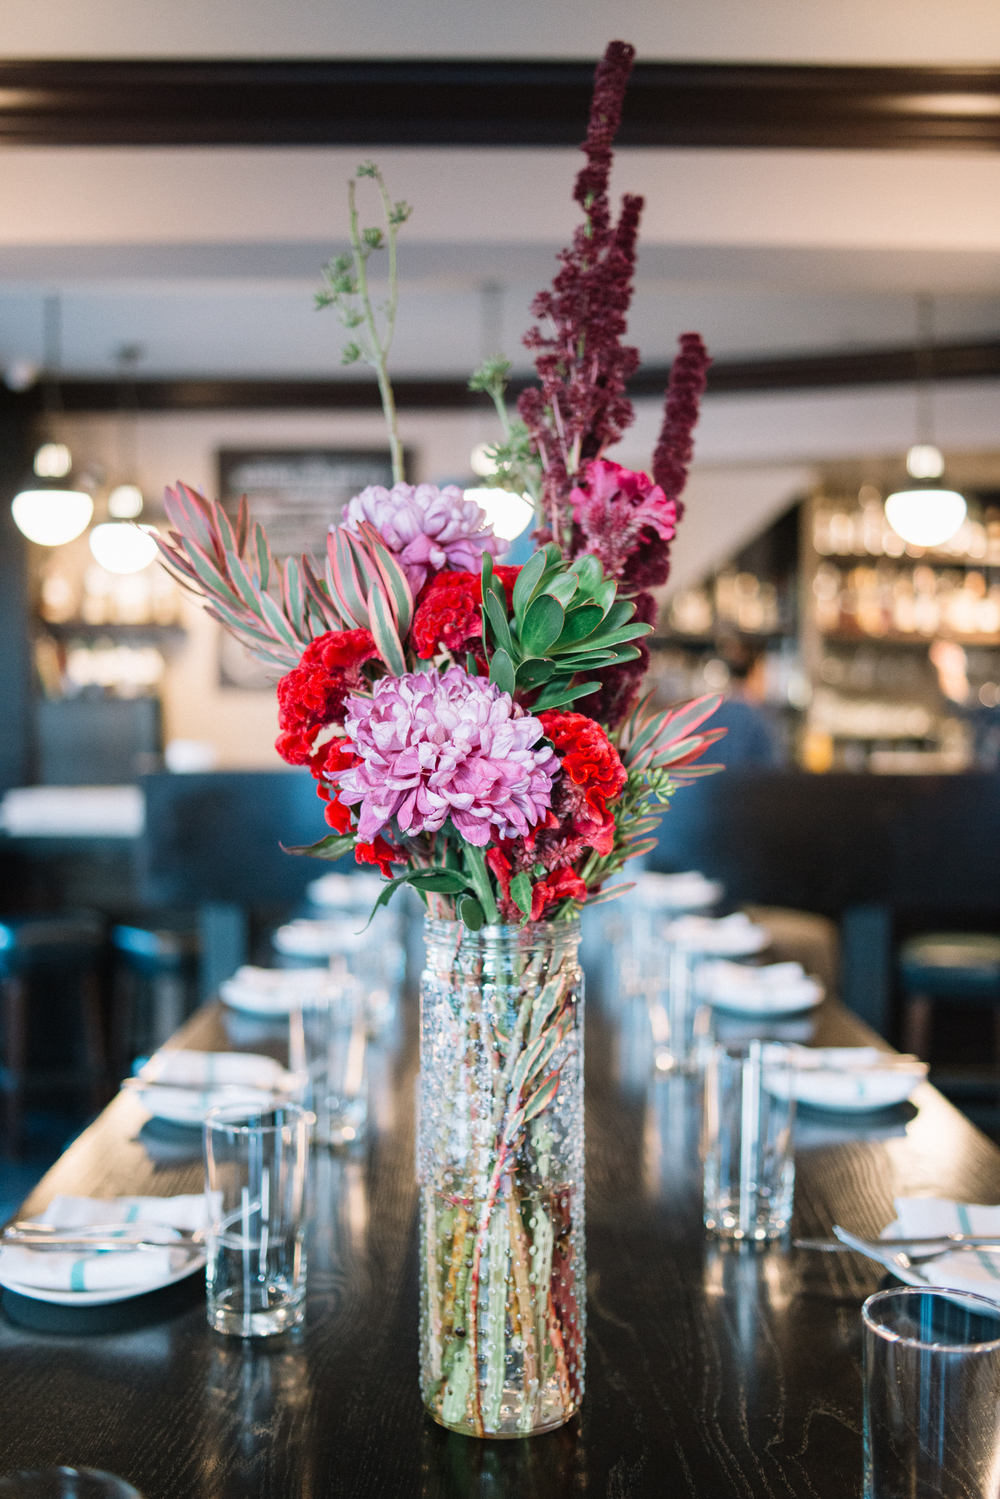 red+flower+arrangement+in+clear+vase+on+a+business+table.jpeg